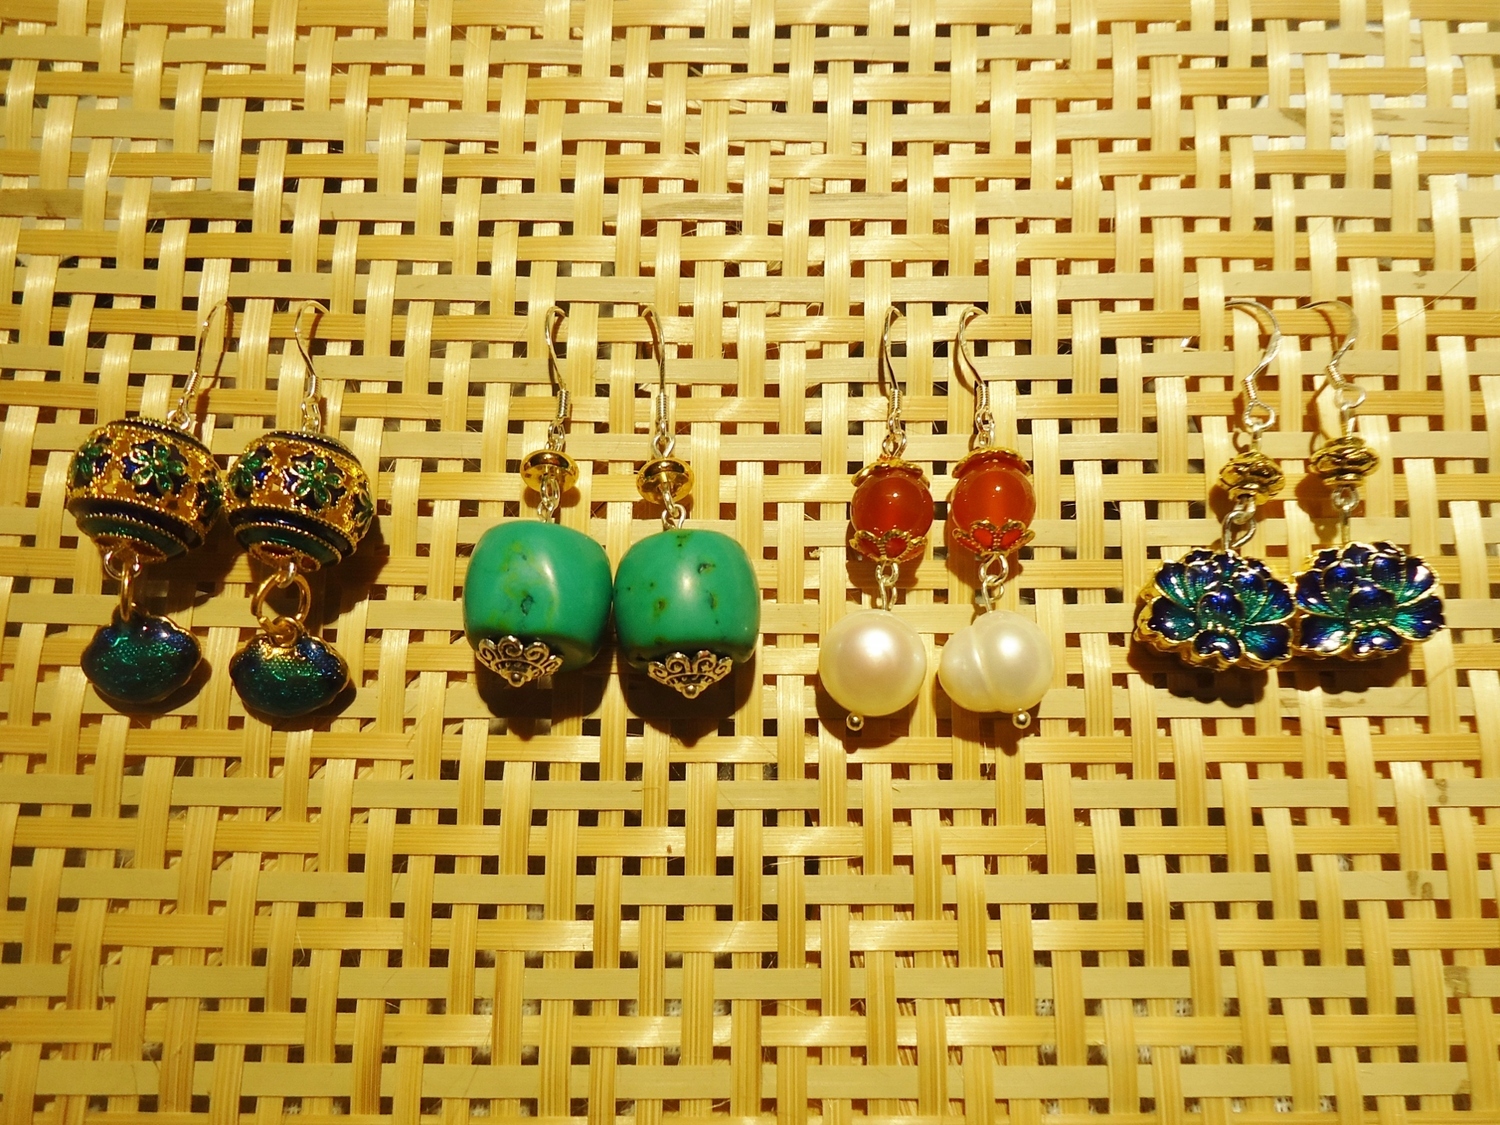 Earrings (c) by Mary of Dongxiang